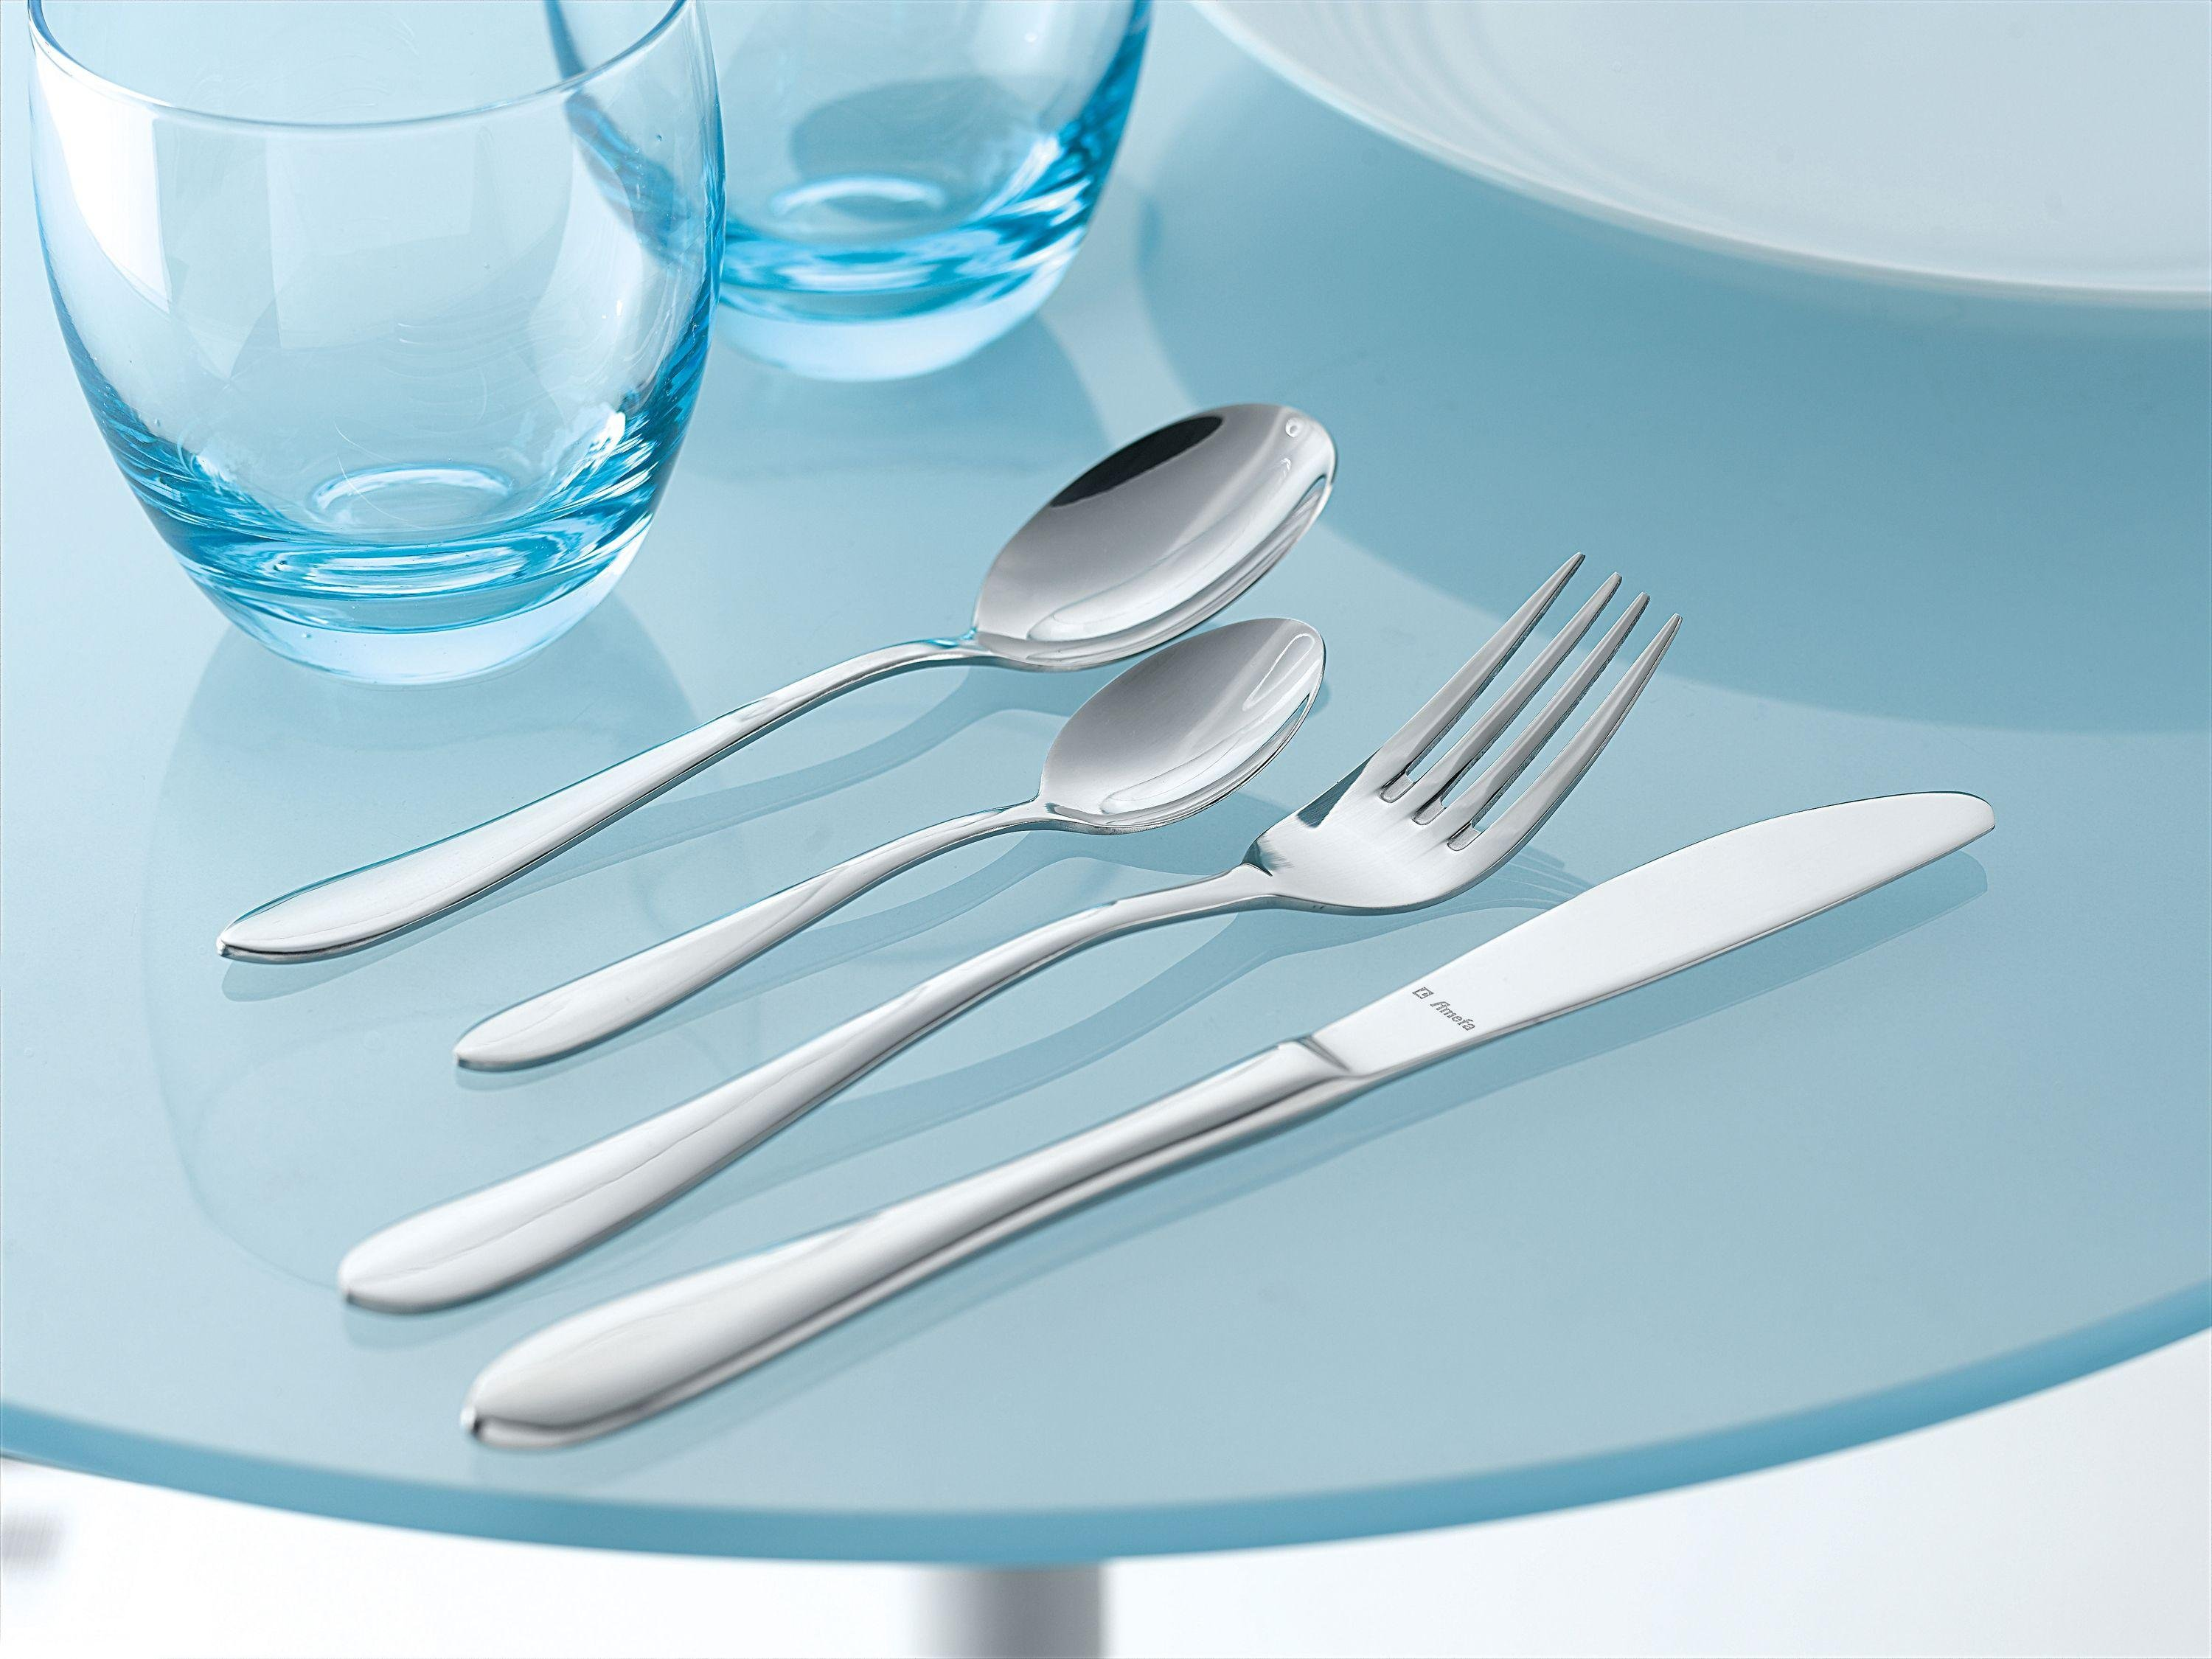 Image of Amefa Modern Sure 16 Piece Cutlery Set.